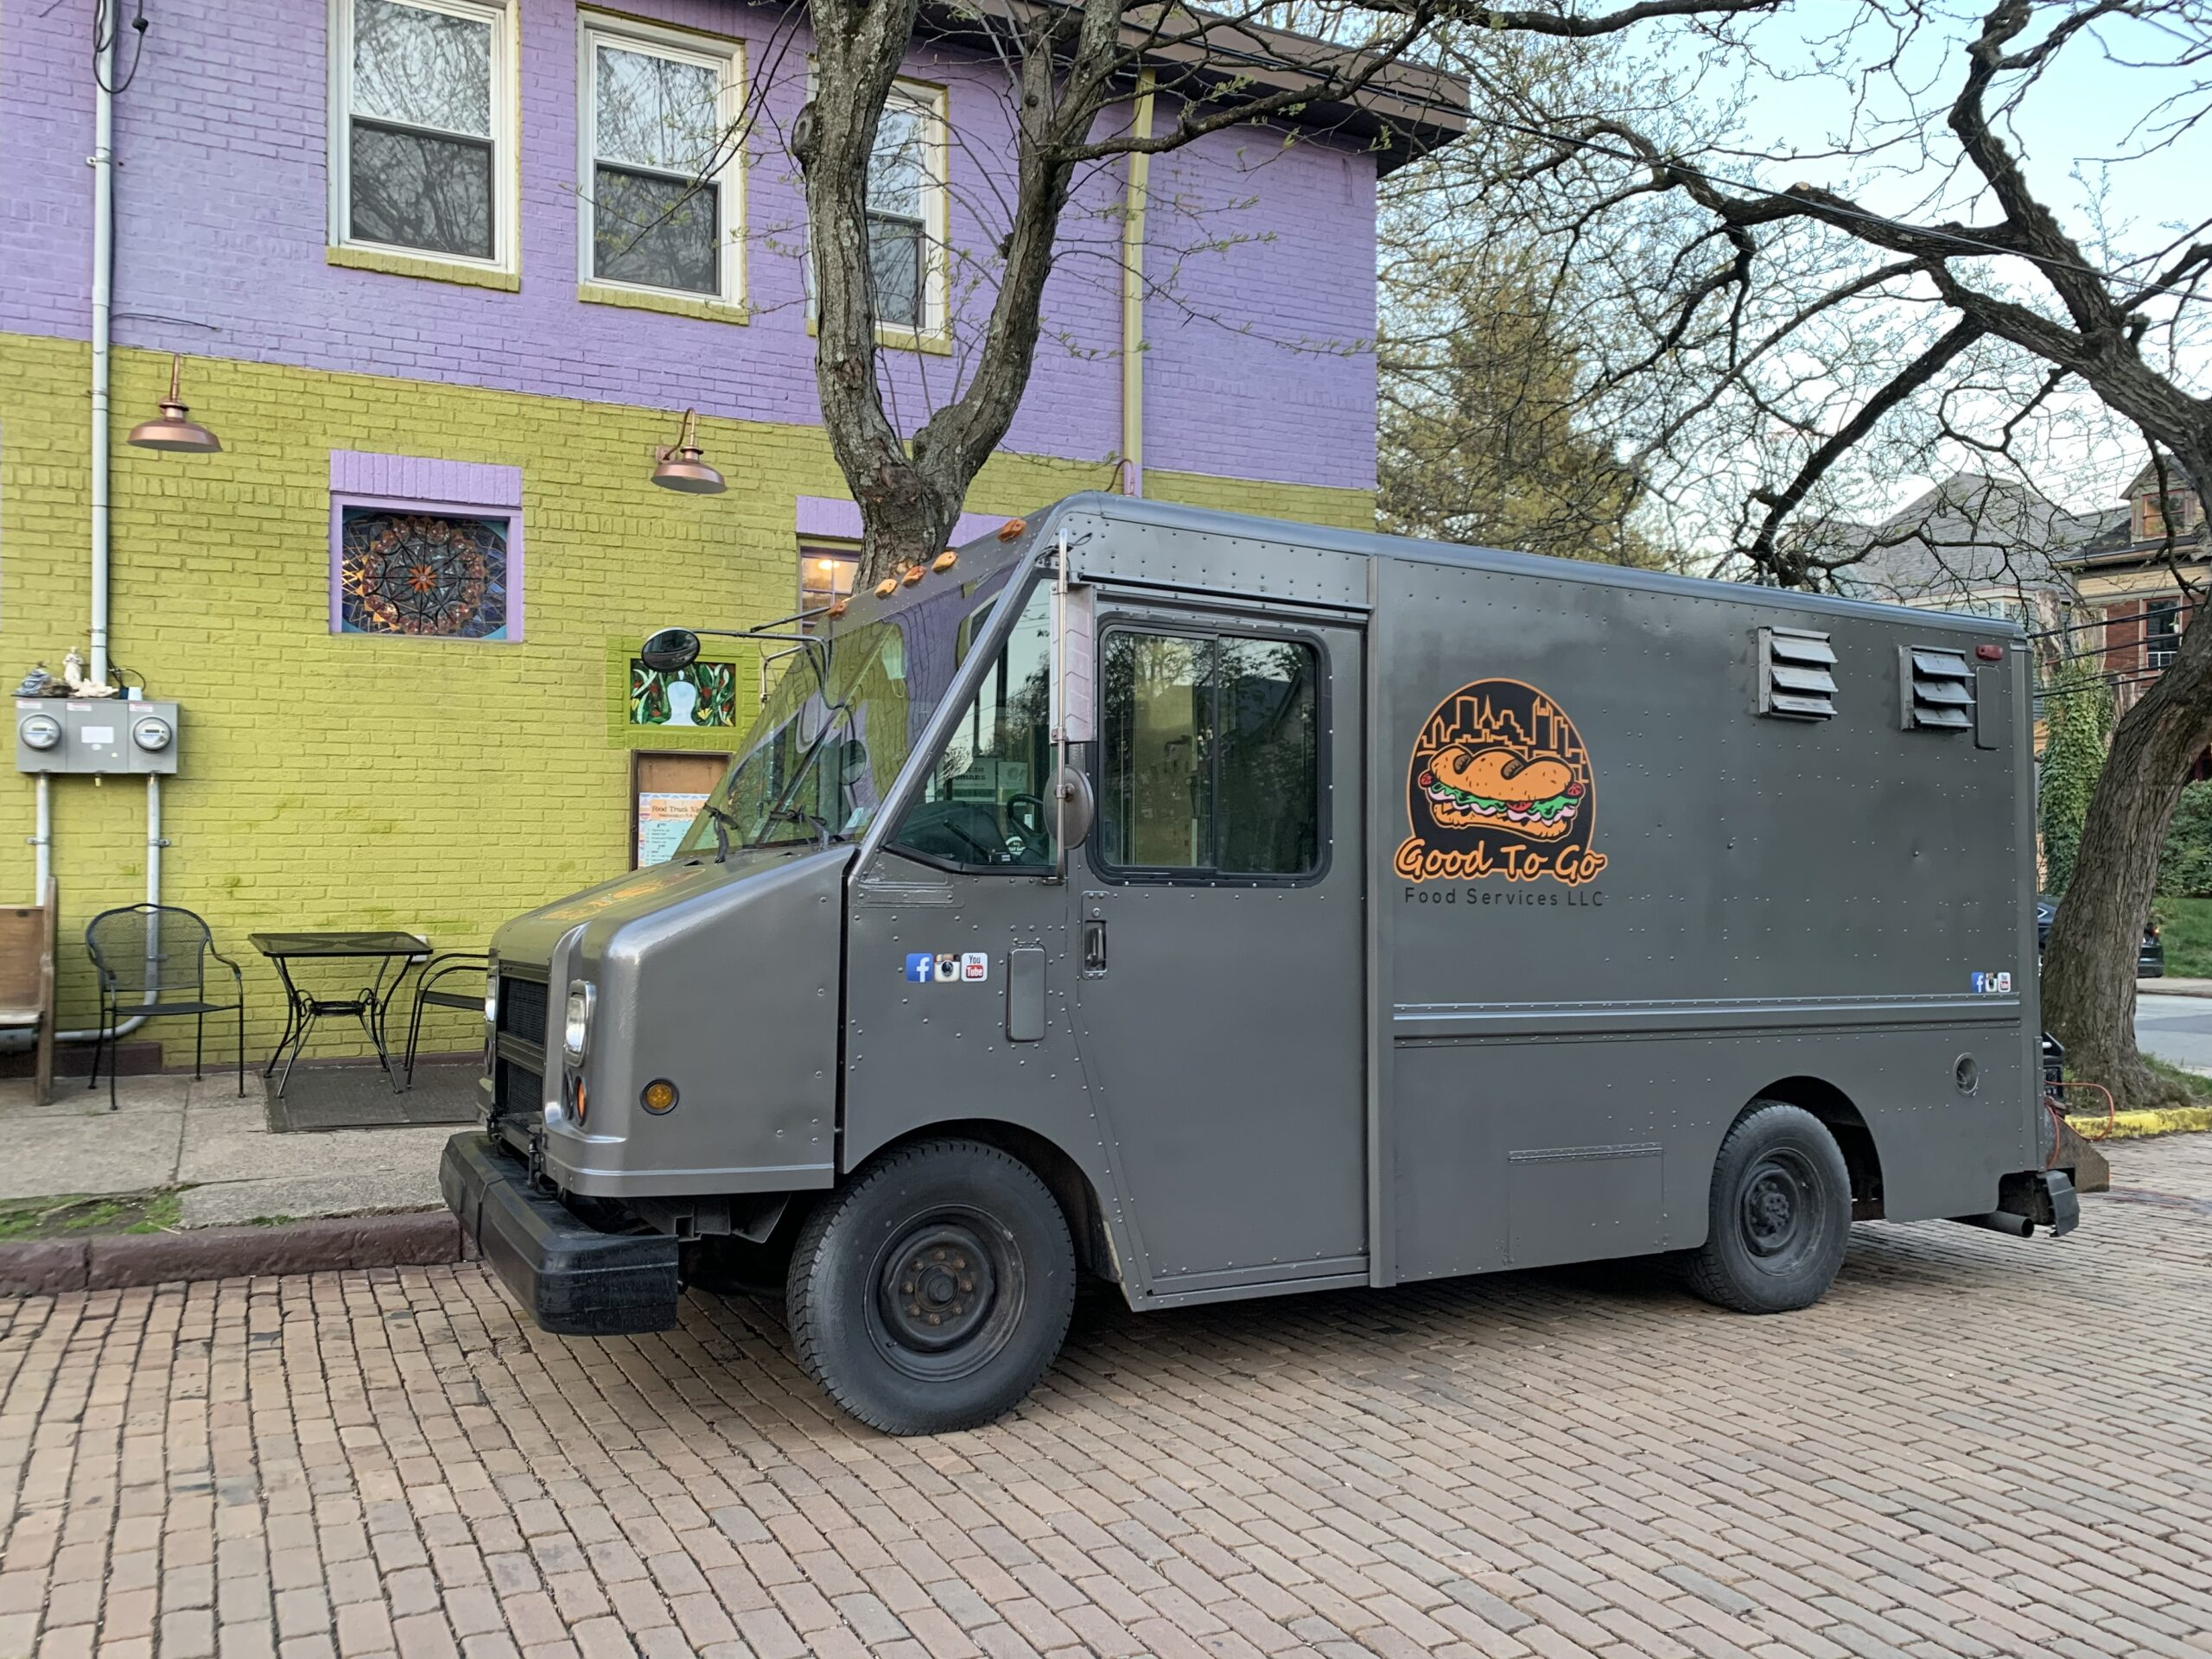 Good To Go Food Truck at Biddle's Escape